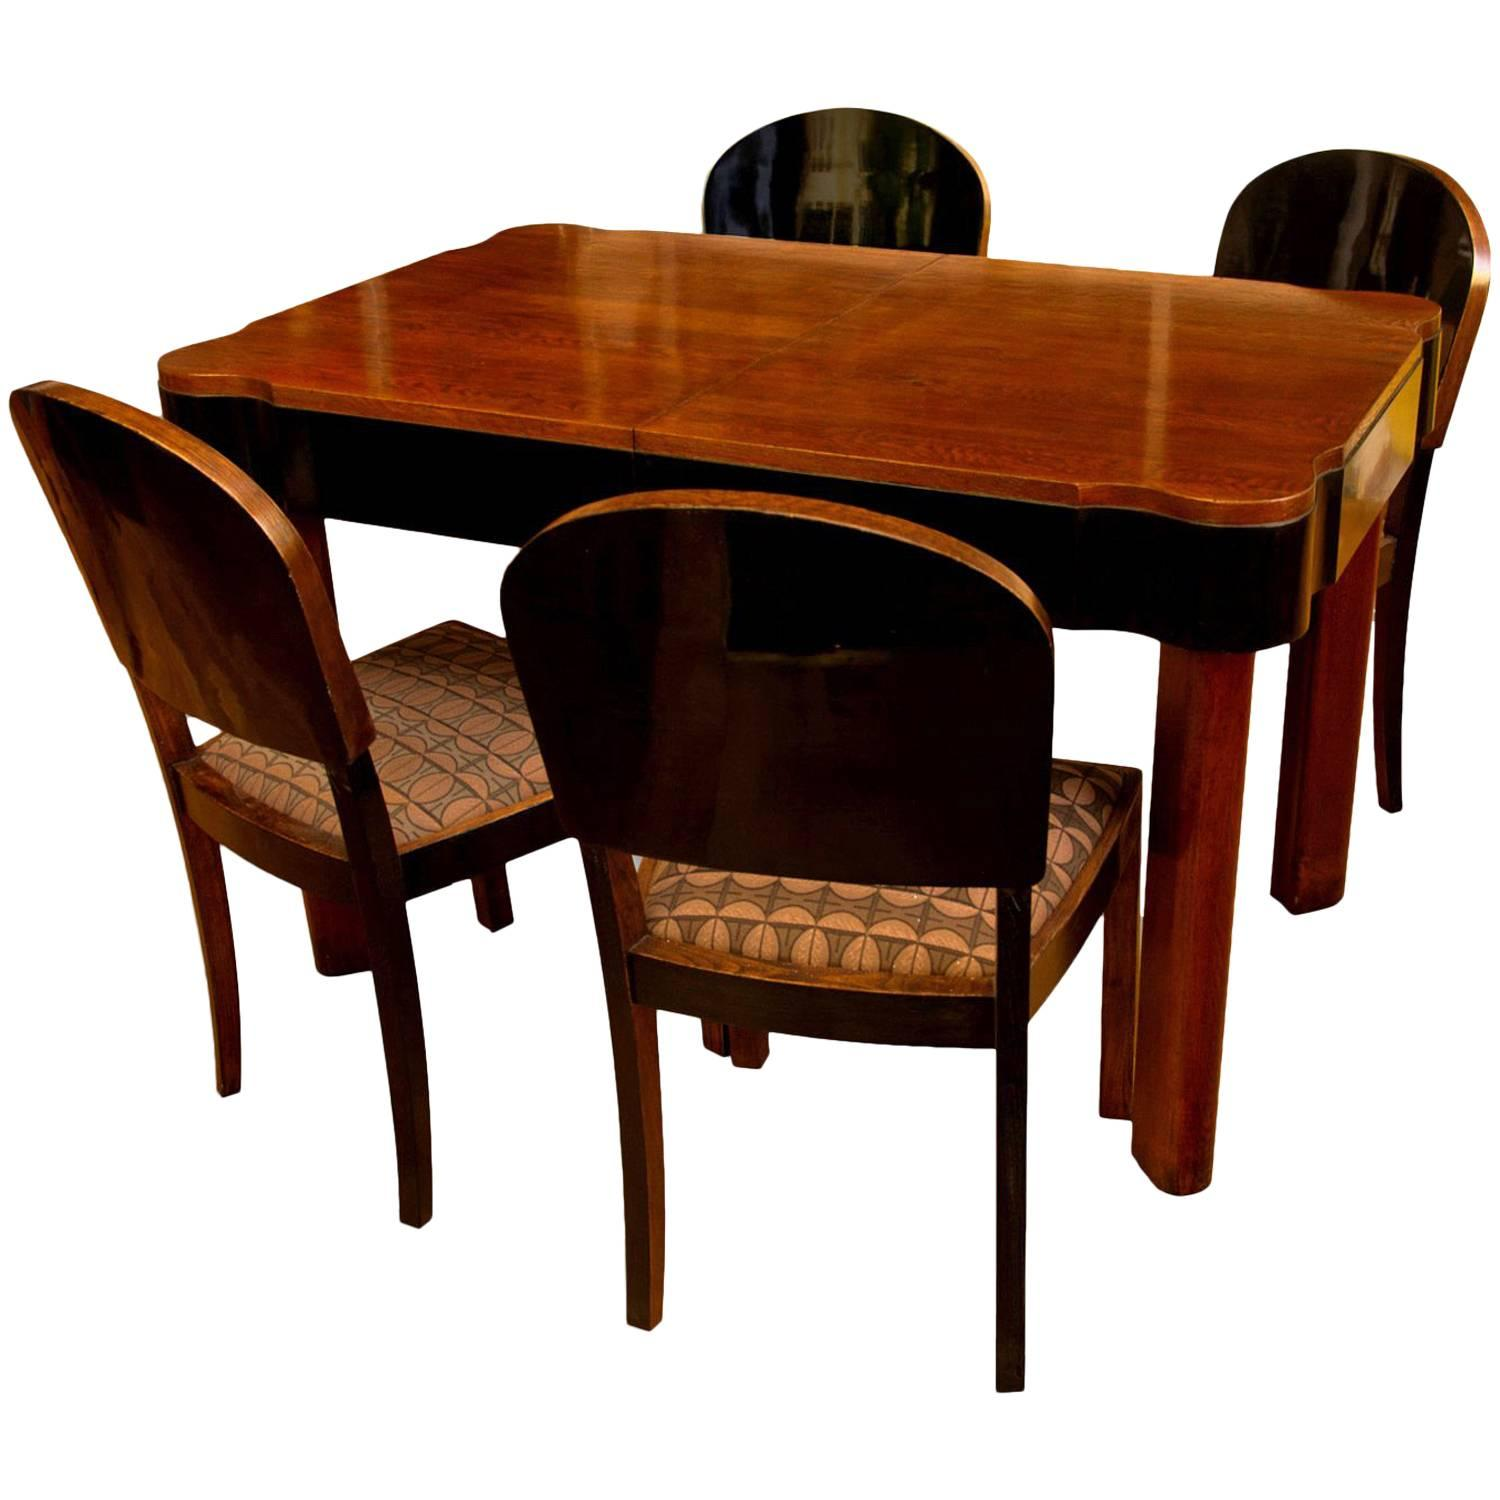 Charmant German Art Deco Dining Set In Oak, 1930s For Sale